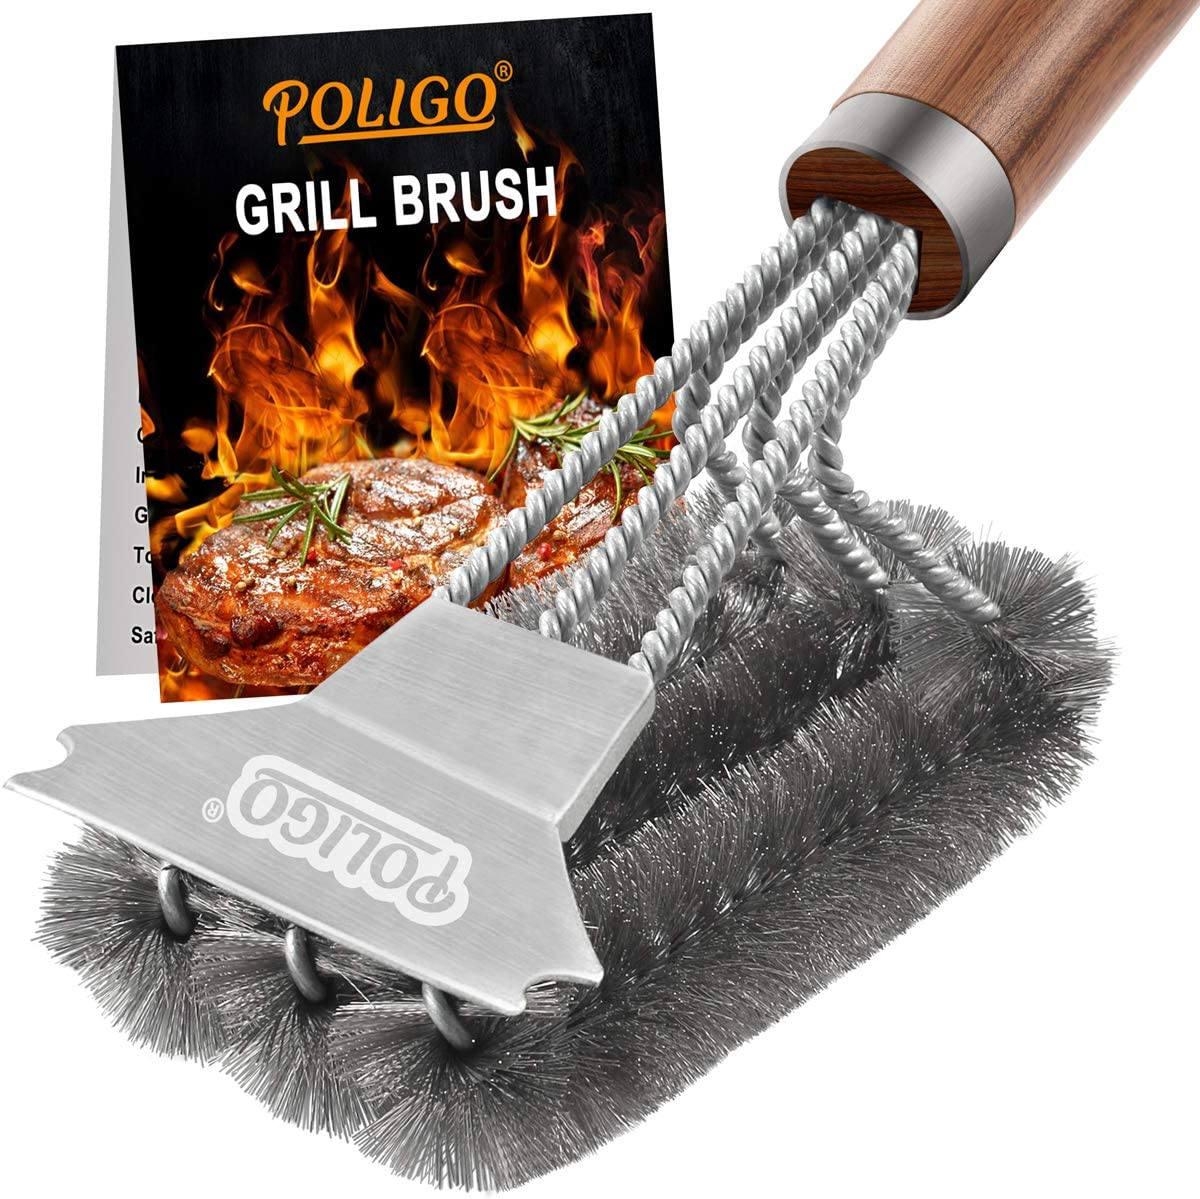 """POLIGO 18"""" Safe Grill Brush and Scraper - Stainless Steel Wire Grill Cleaner Brush Best for Gas Infrared Porcelain Cast Iron Charcoal Grilling Grates - BBQ Brush Cleaner for Grill Effortless Cleaning: Home & Kitchen"""